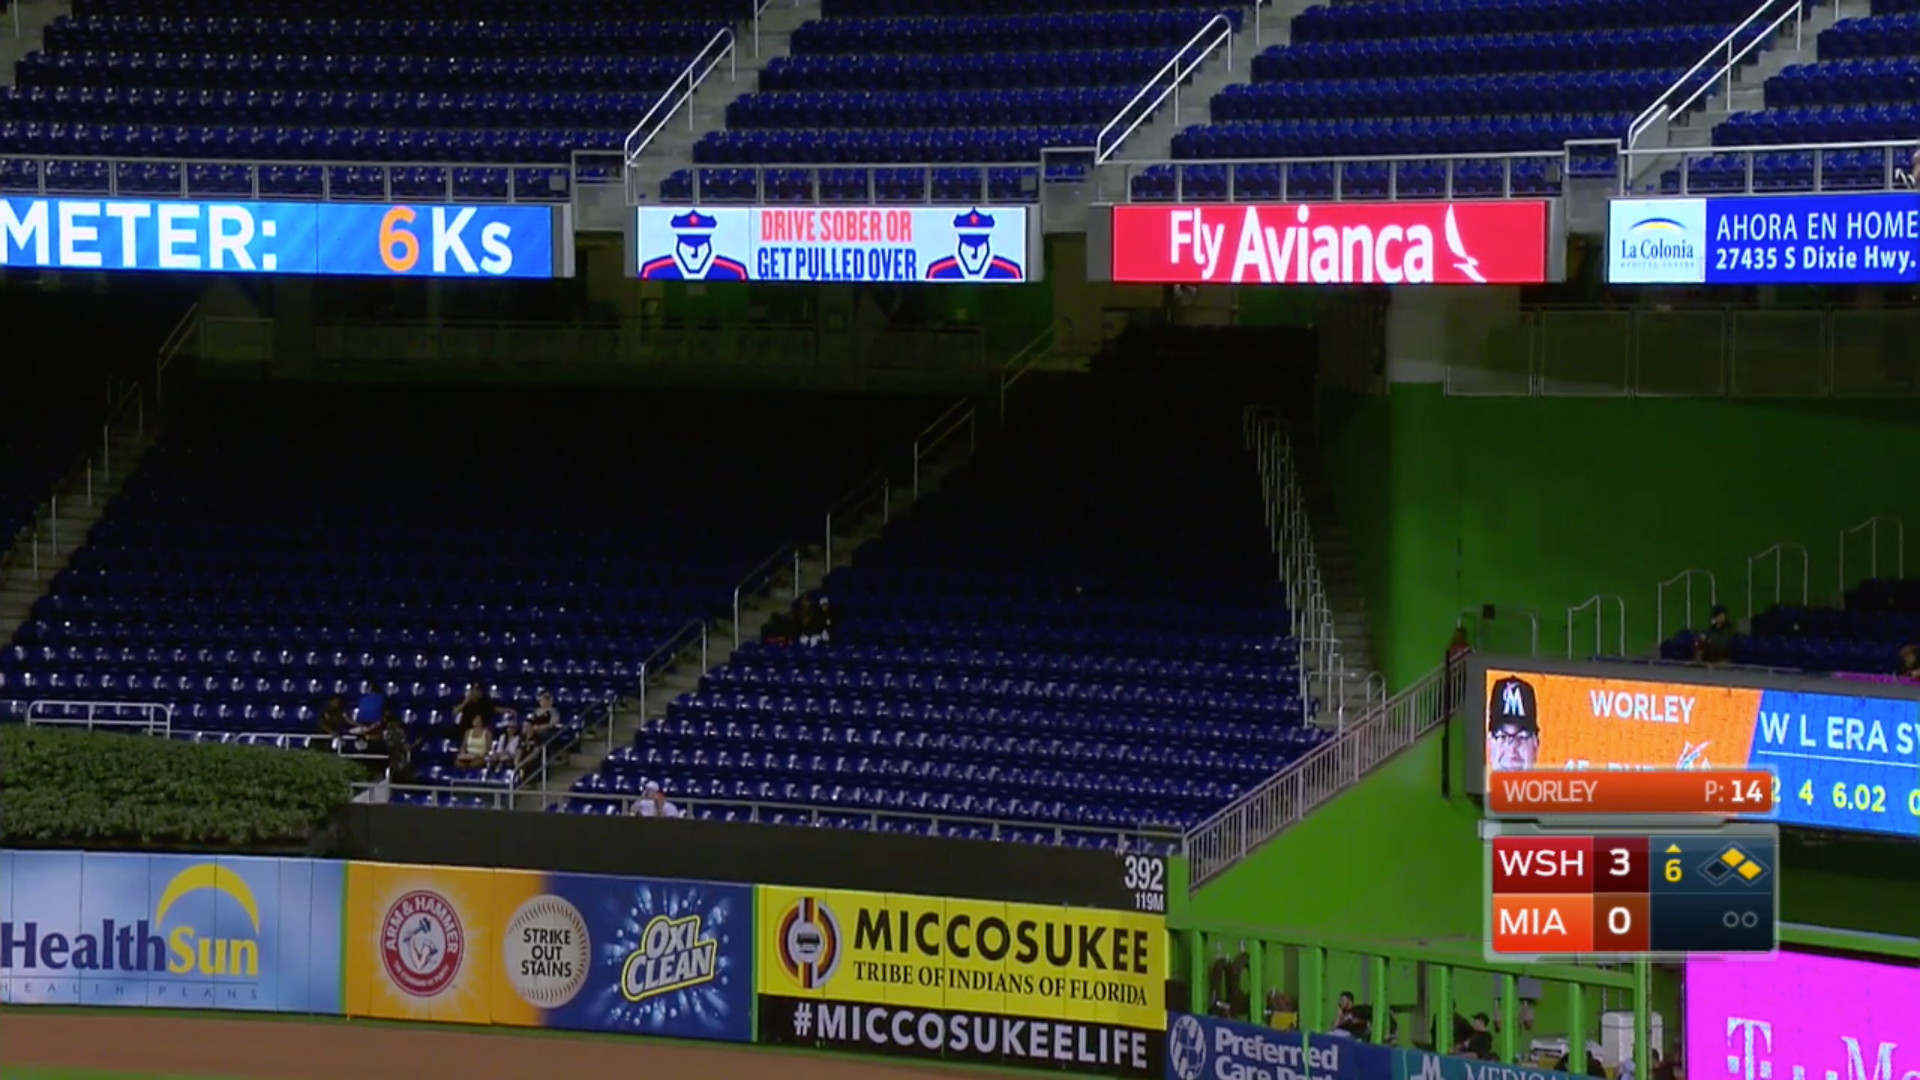 marlins park outfield